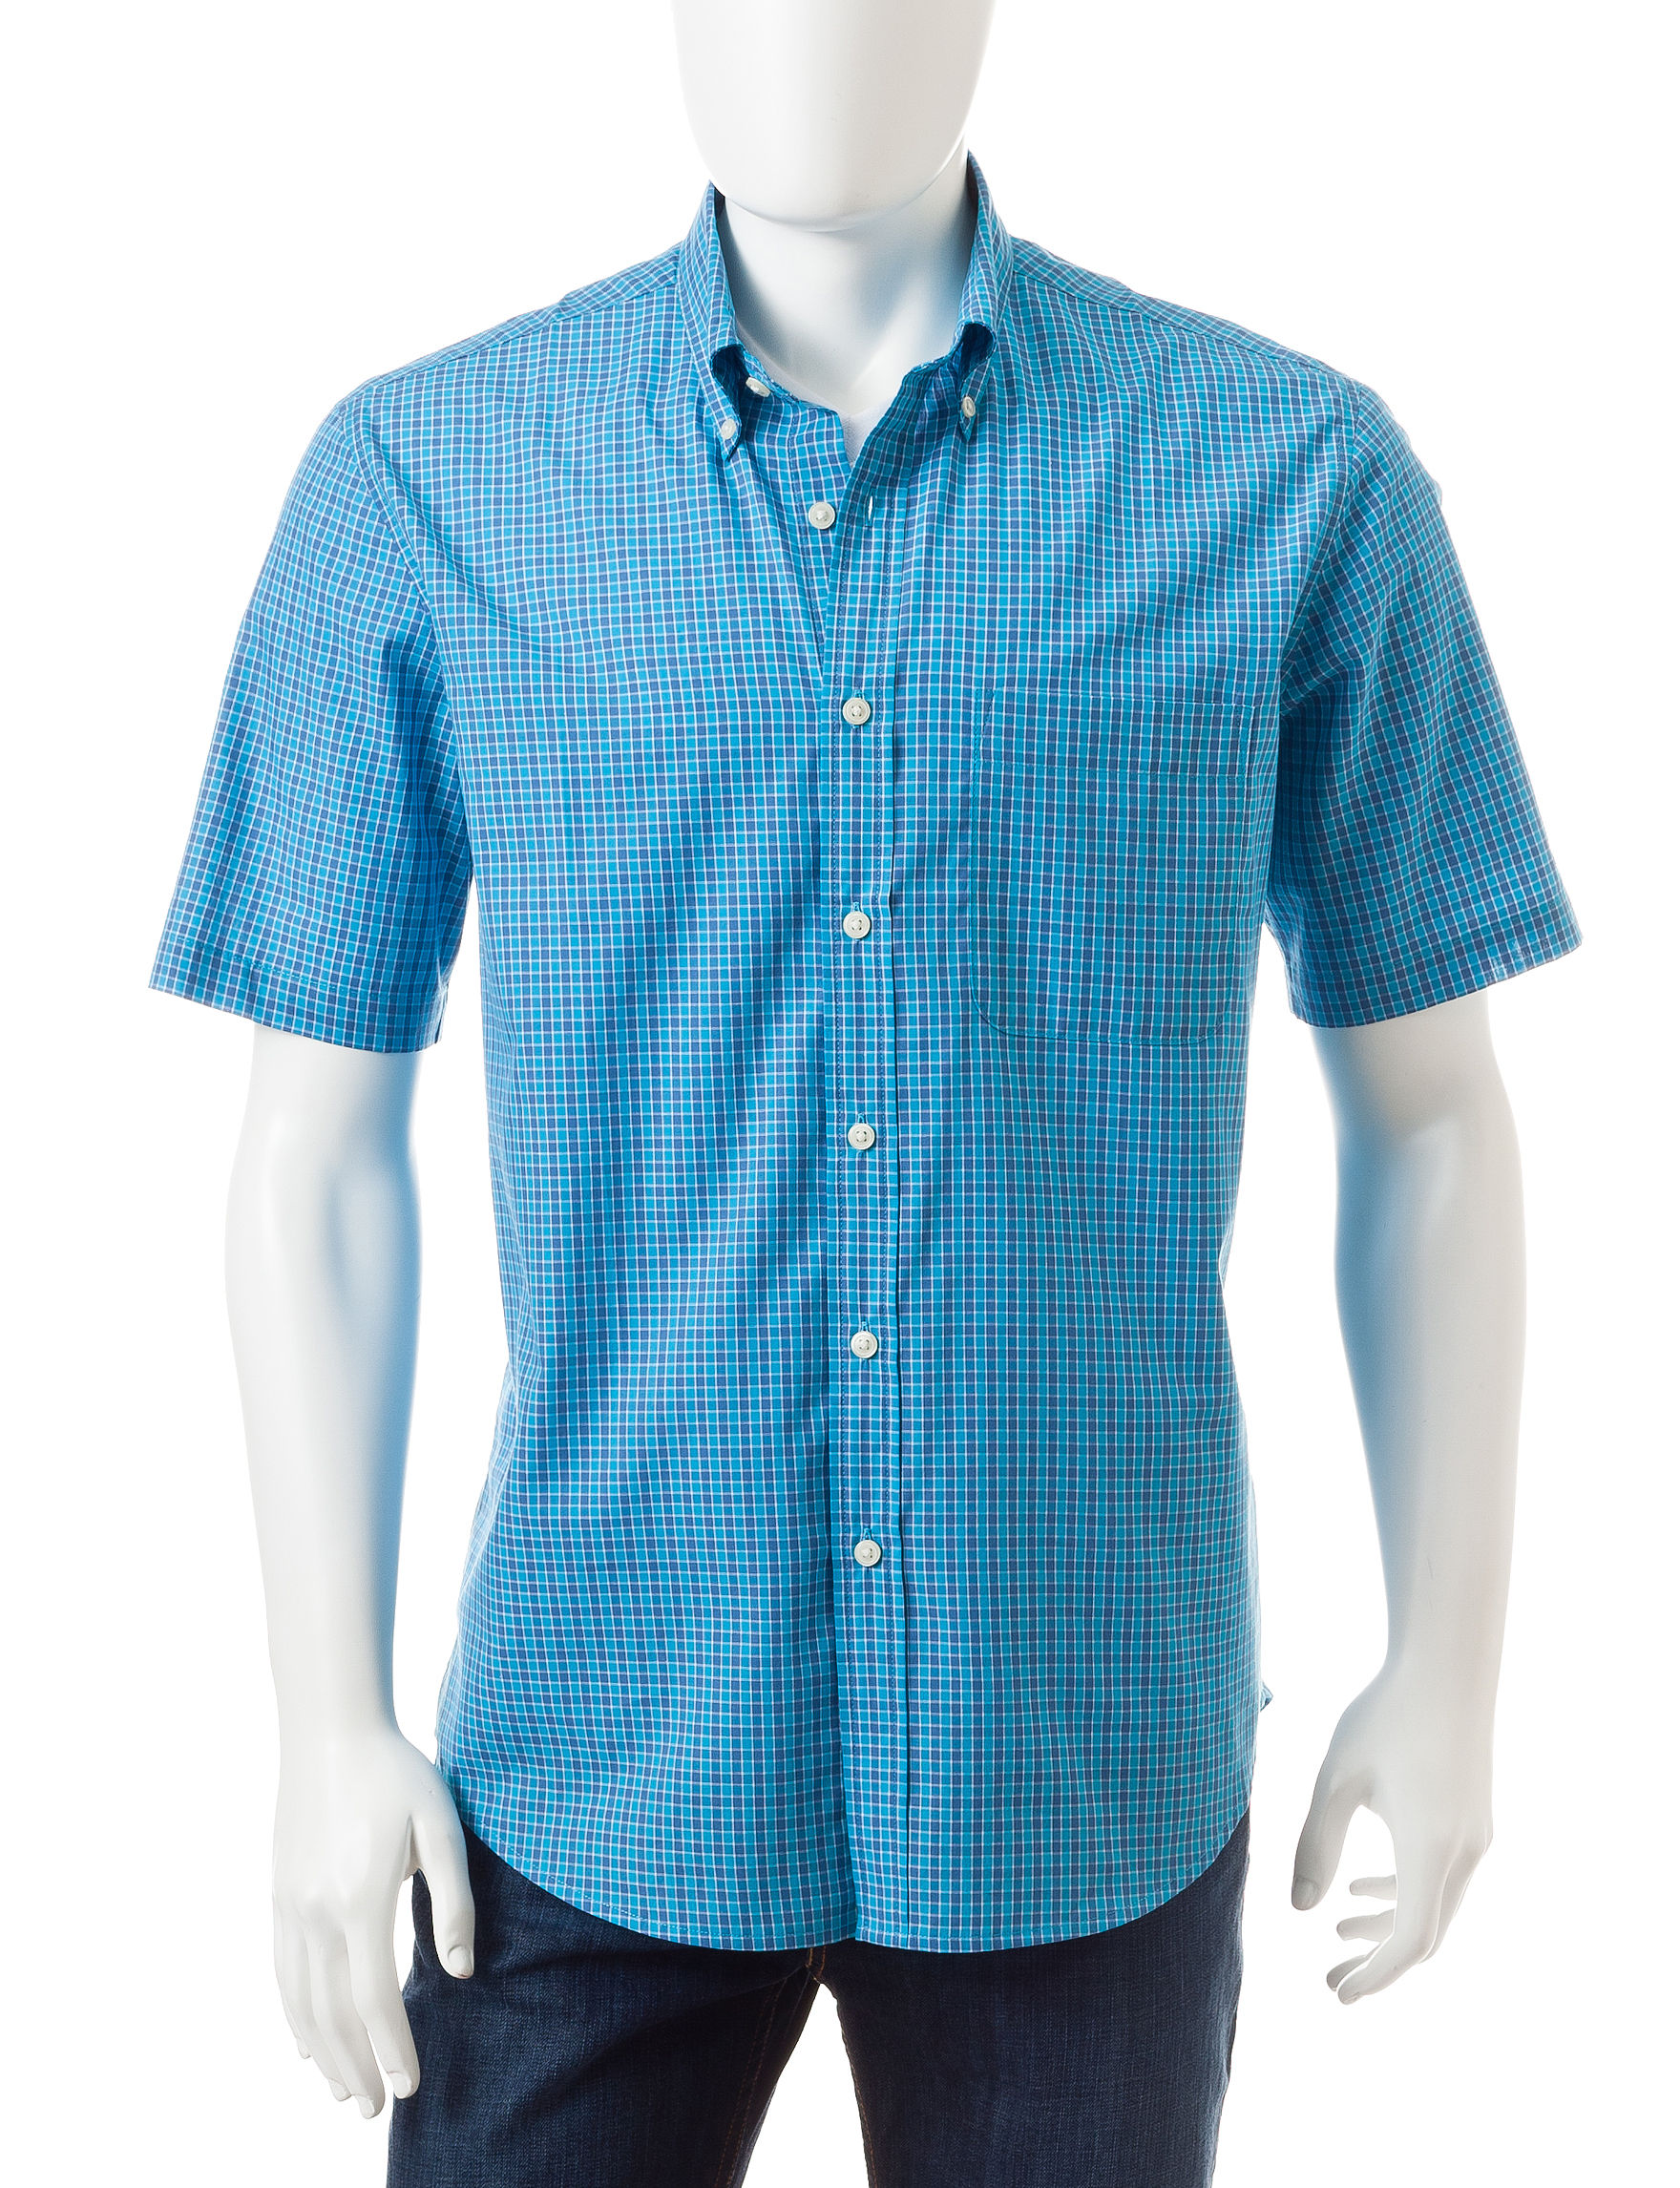 Sun River Delft Casual Button Down Shirts